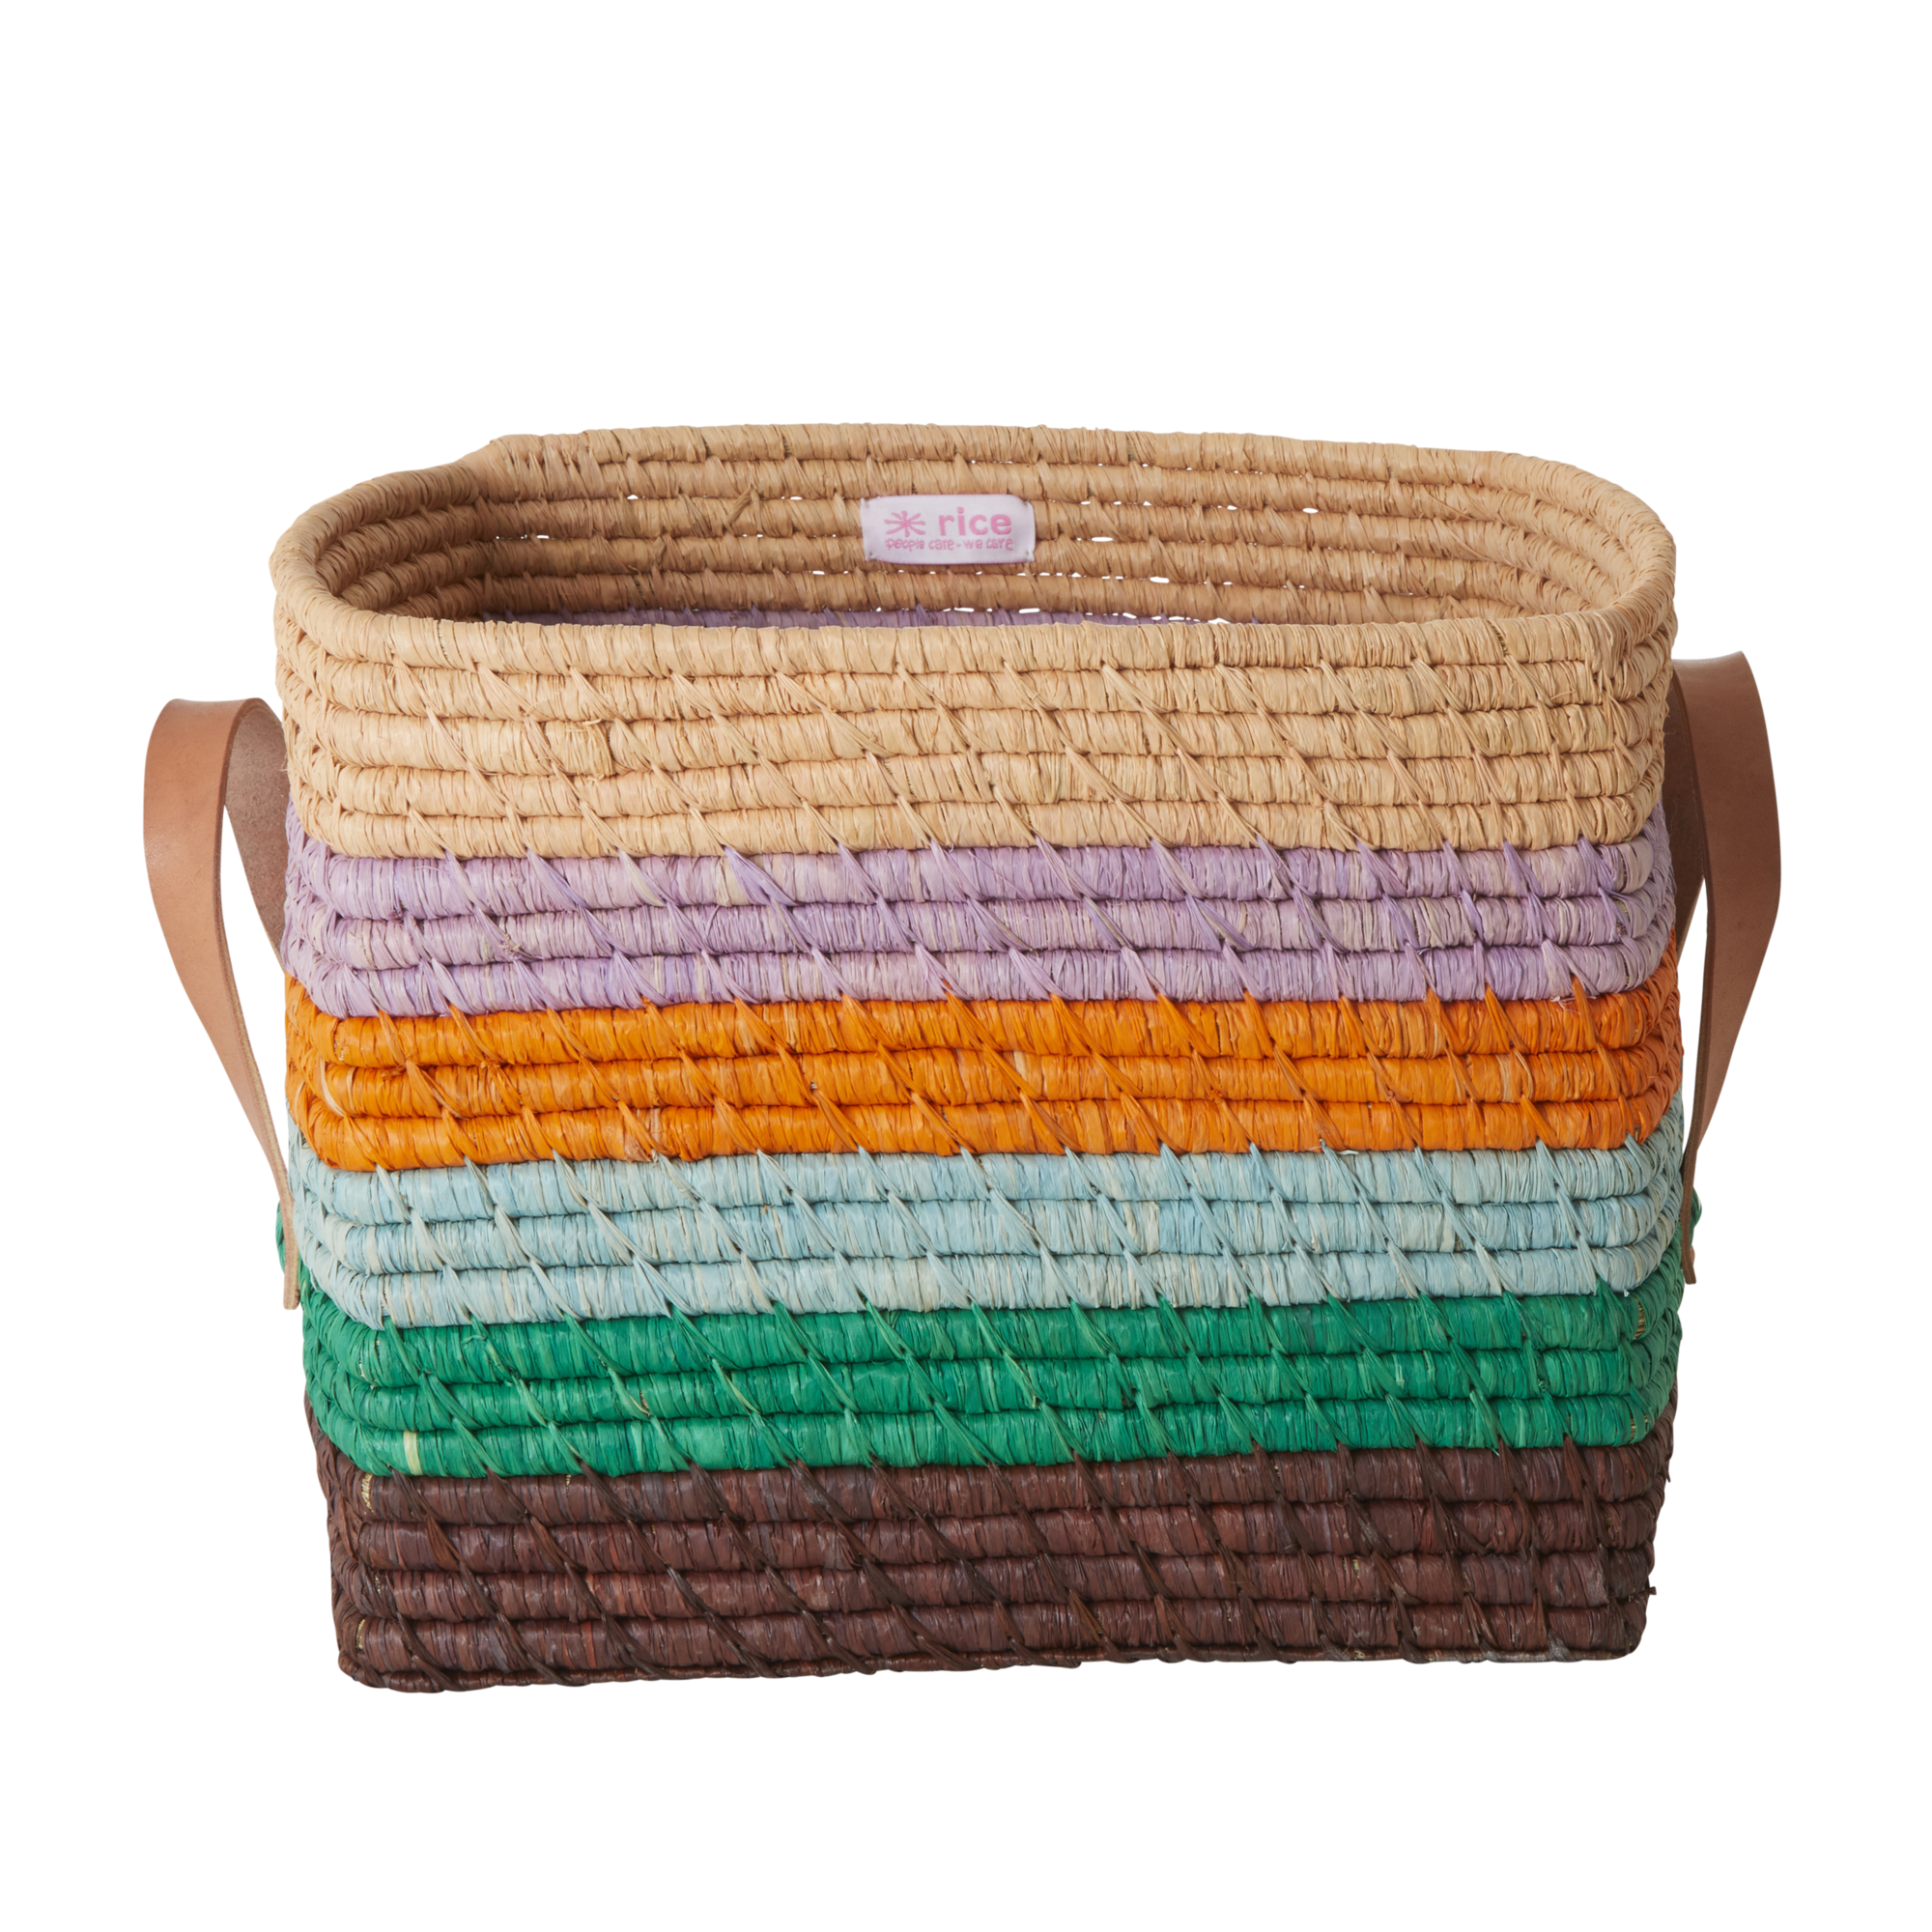 Rice - Small Square Raffia Basket with Leather Handles - Stripes The Call of The Disco Ball